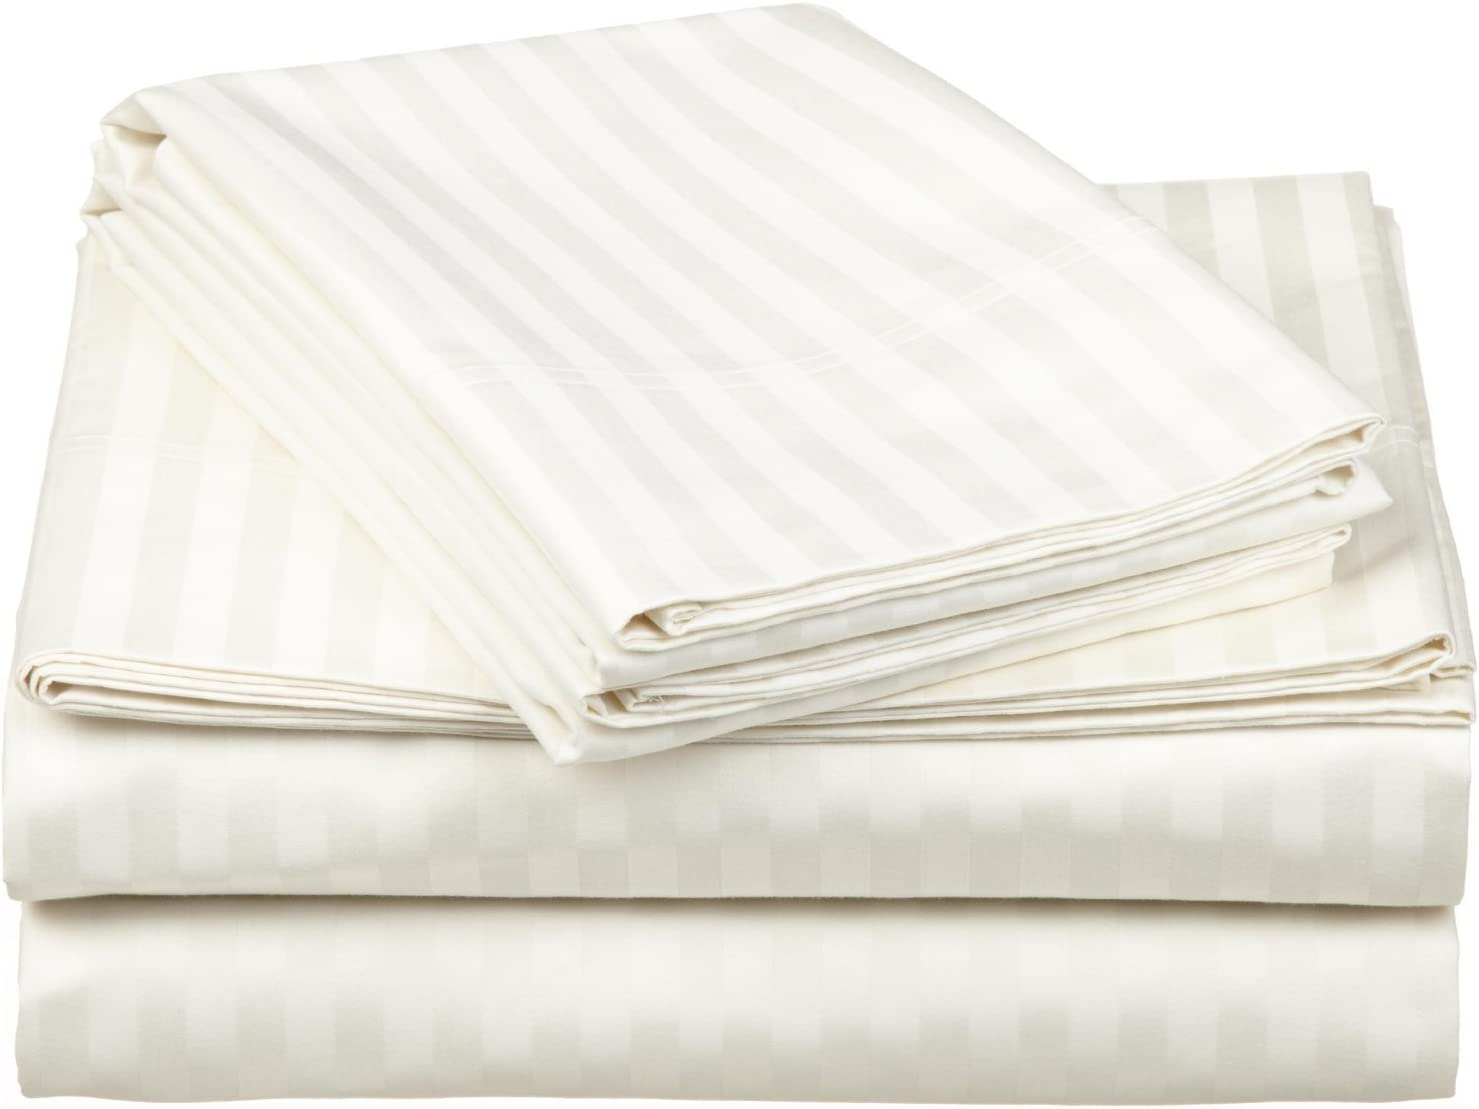 Superior Impressions By Luxor Treasures 100 Egyptian Cotton 650 Thread Count Sheet Set Ivory Full 4 Piece Home Kitchen